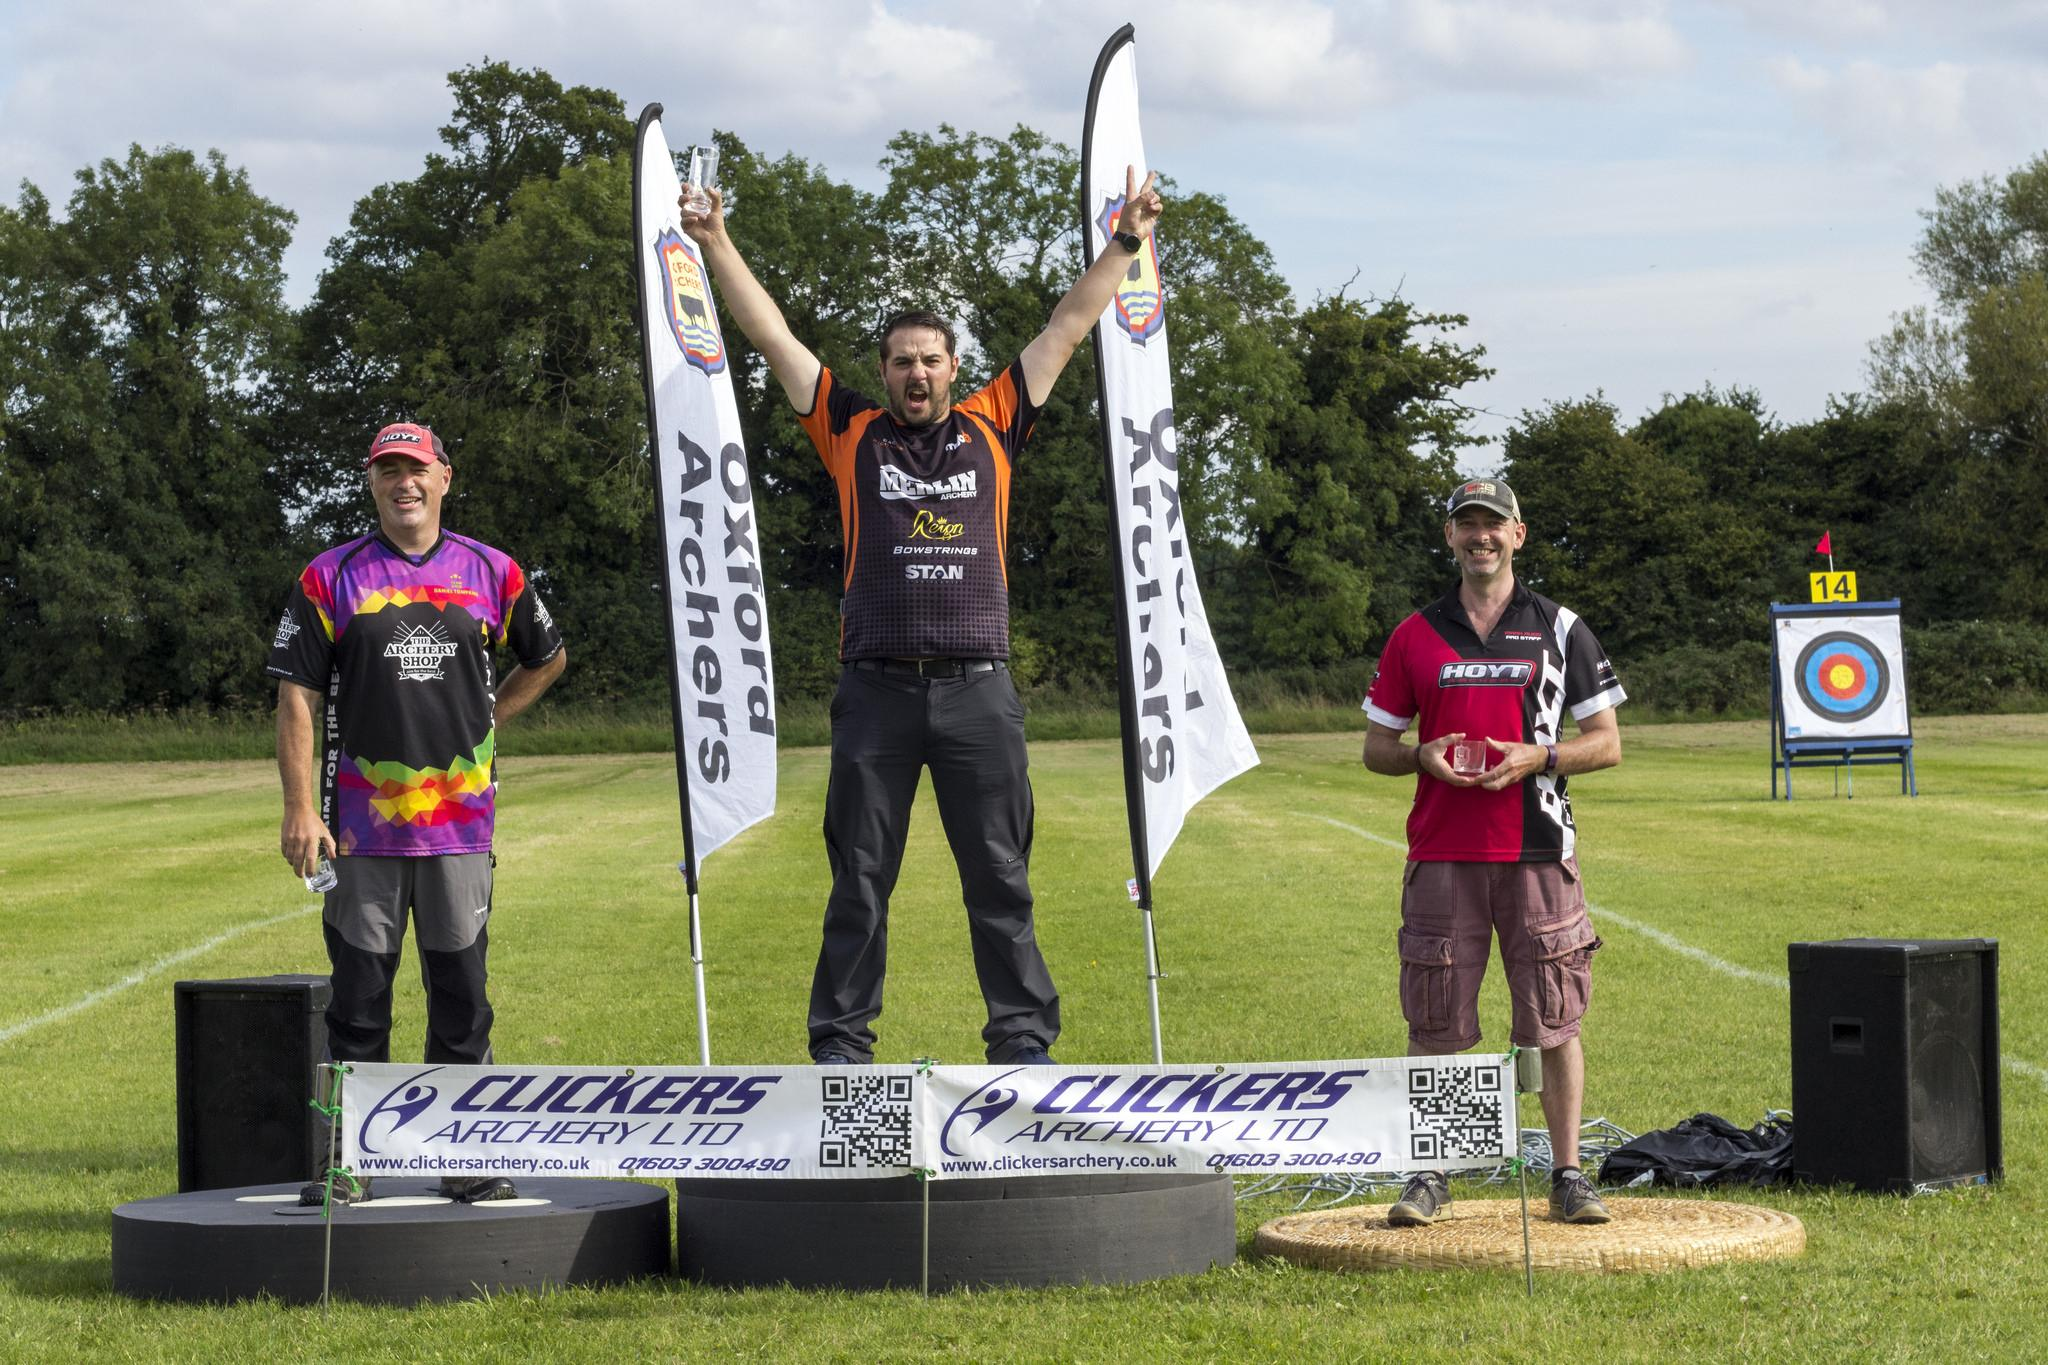 Oxford Archers Team Challenge 2018 (incorporating ArcheryGB National Tour stage 6)